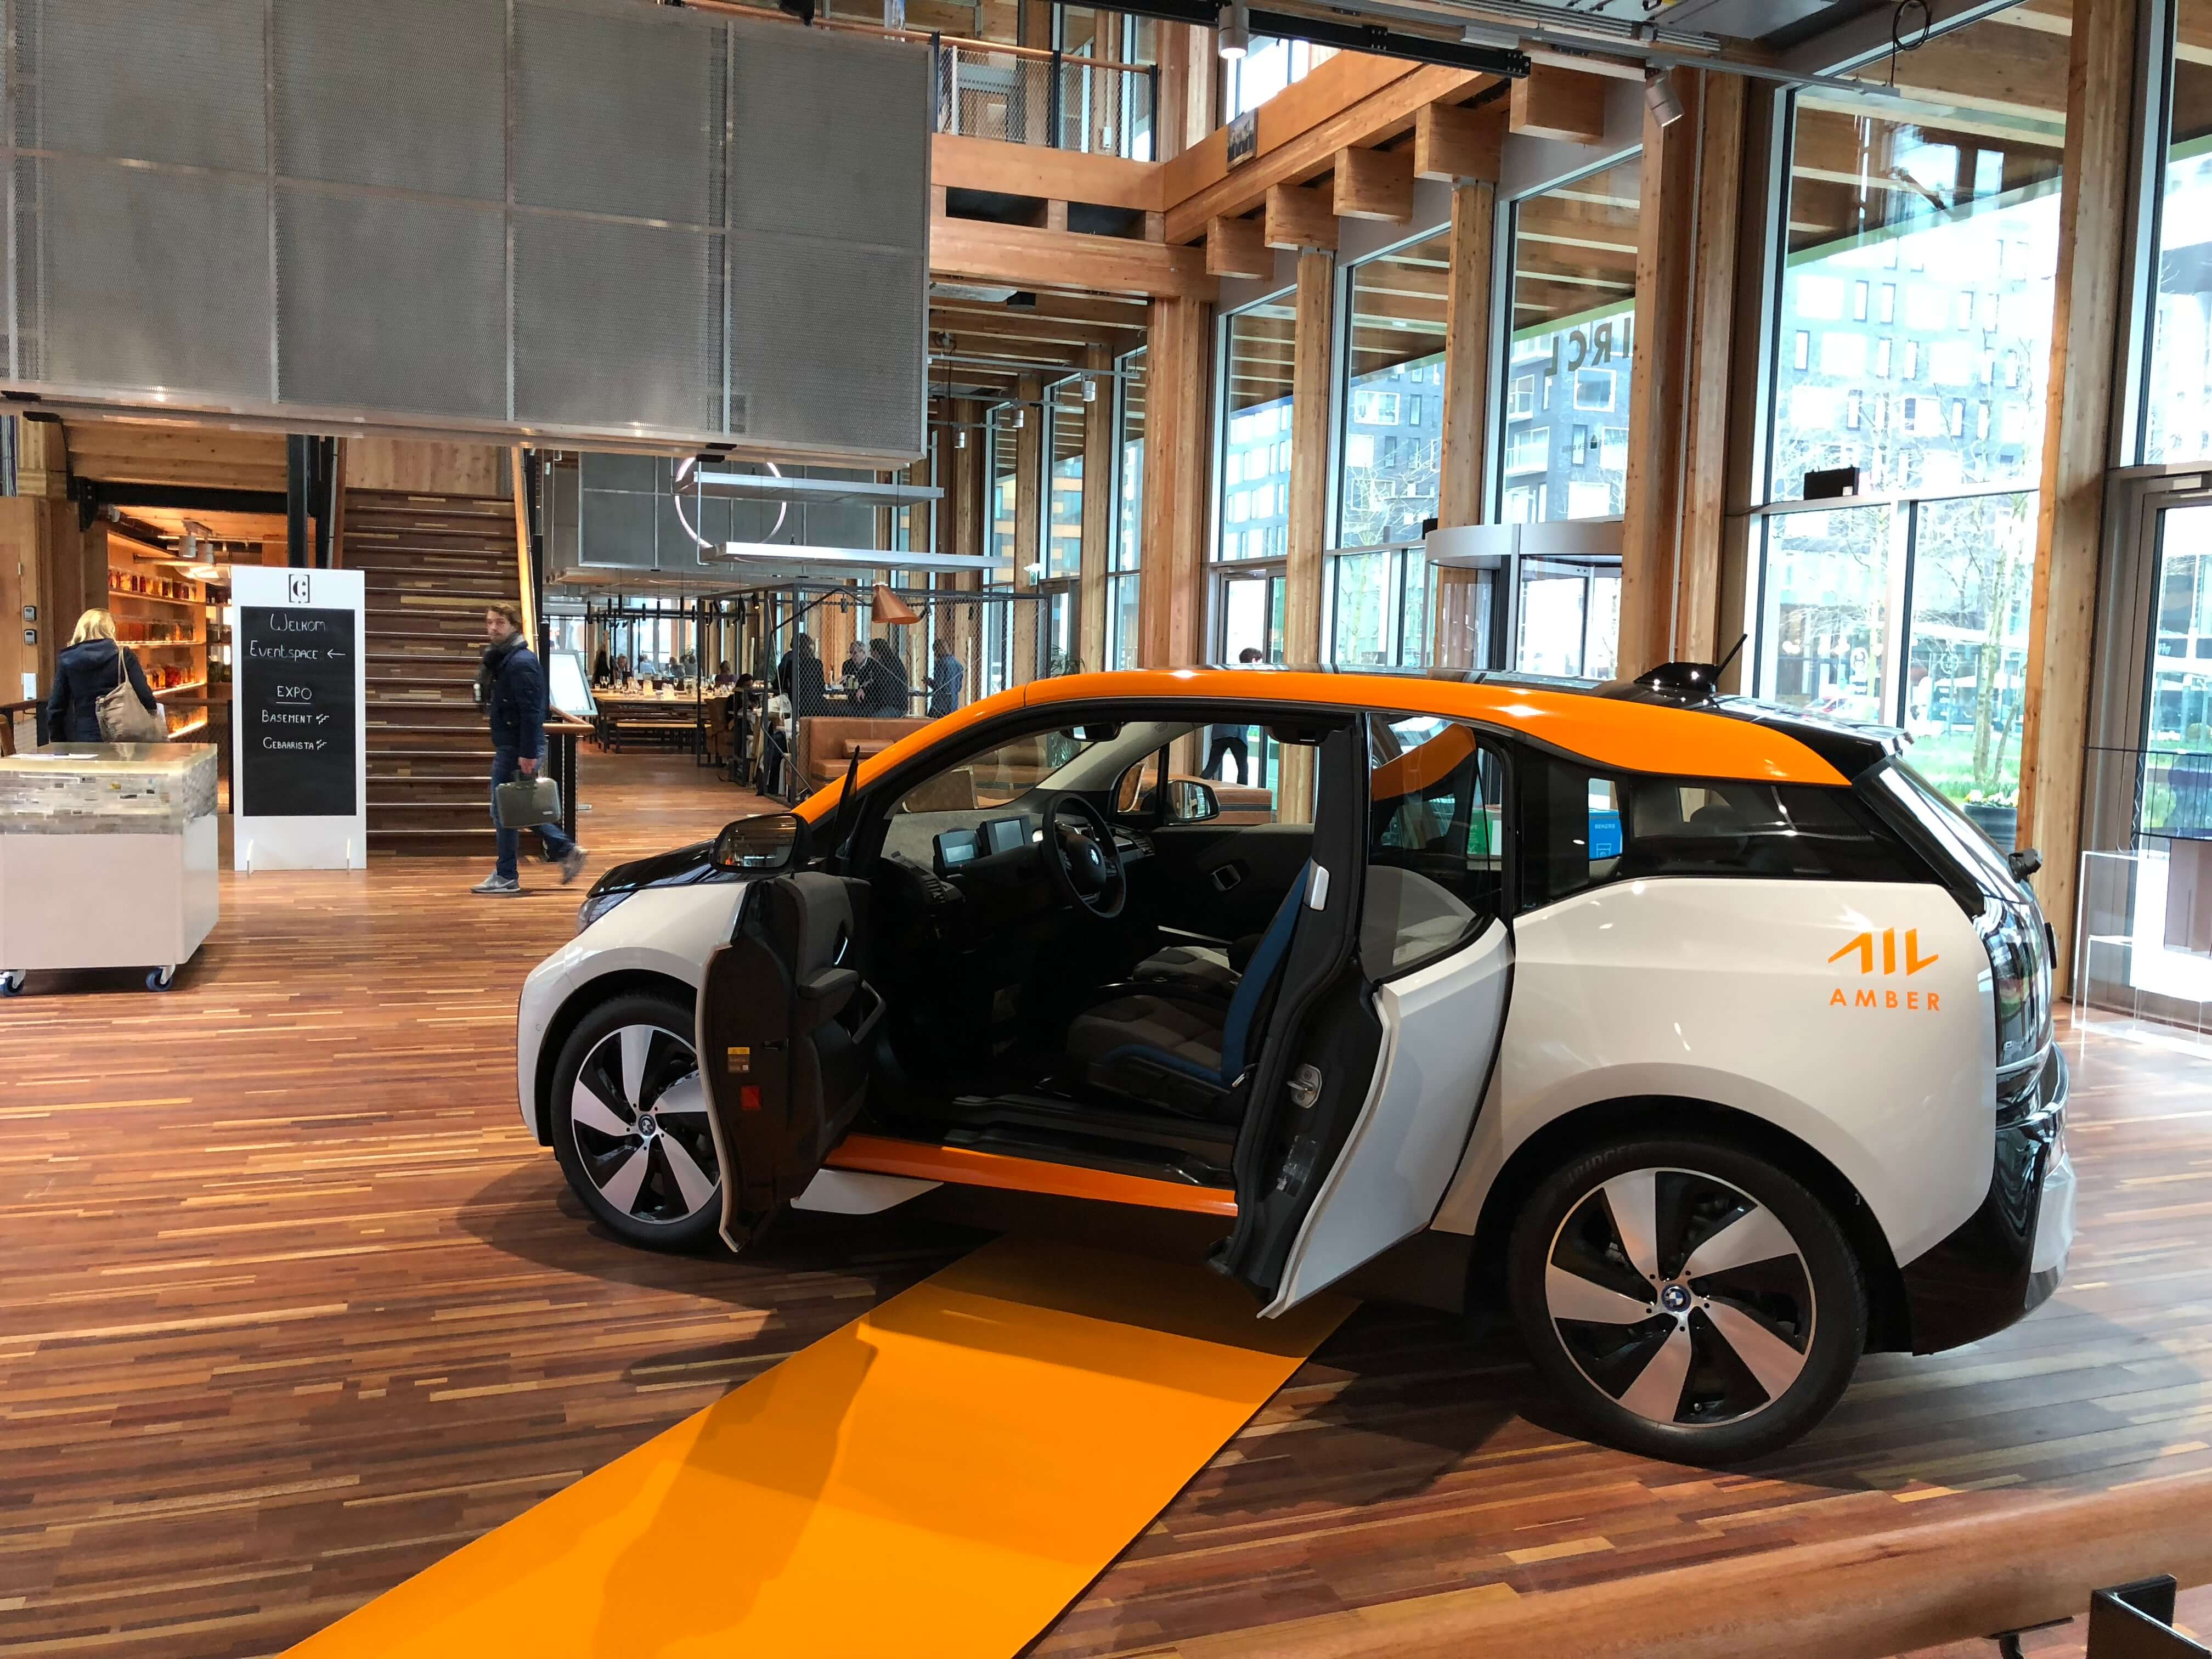 In the Zuidas business district, ABN AMRO and EY choose Amber car-sharing service